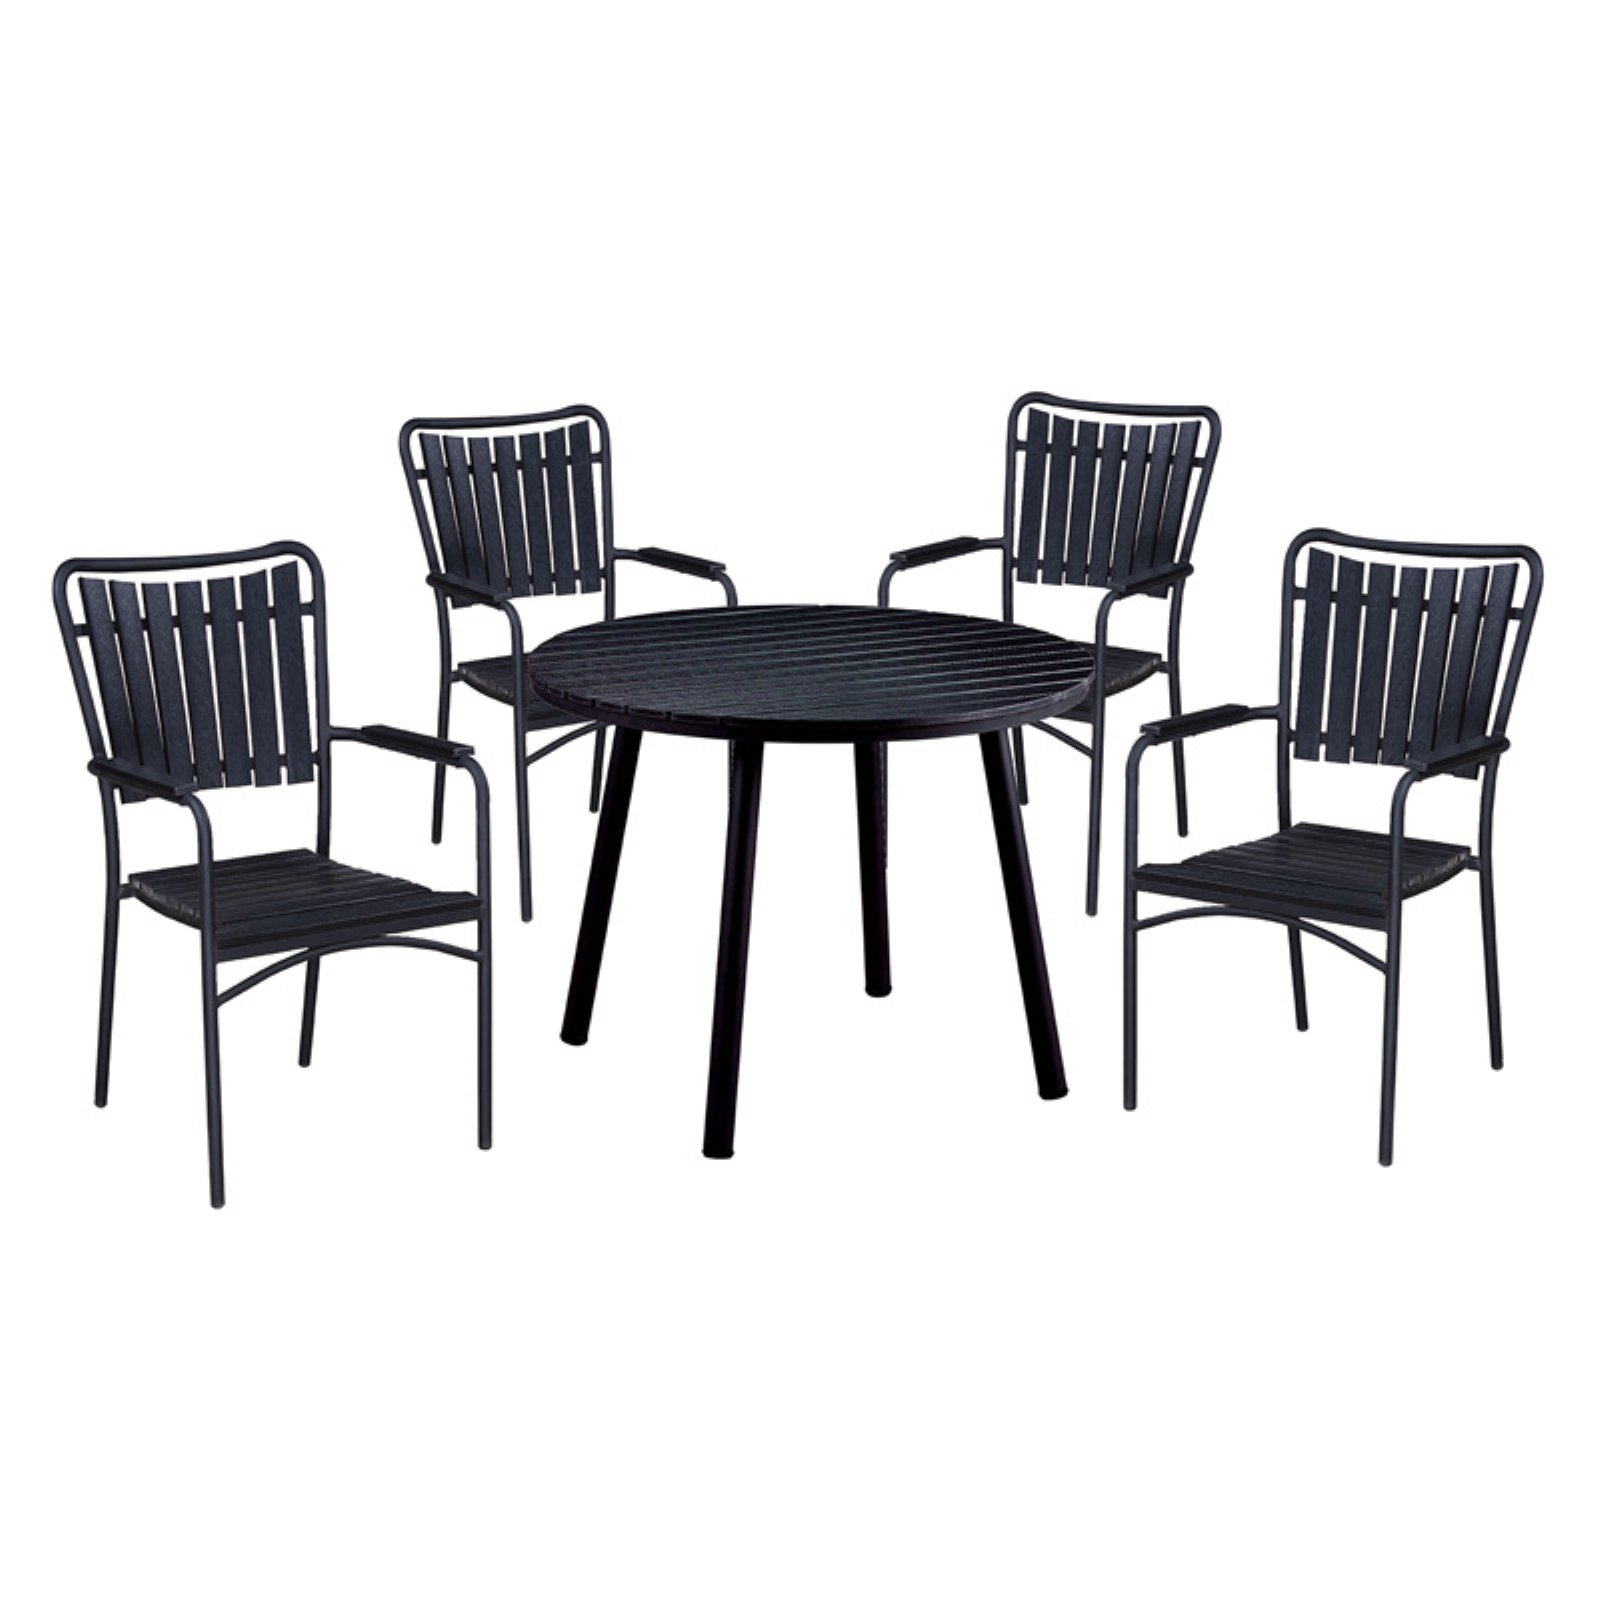 Oakland Living Splat Back Faux Wood and Steel 5 Piece Round Counter Height Patio Dining Set